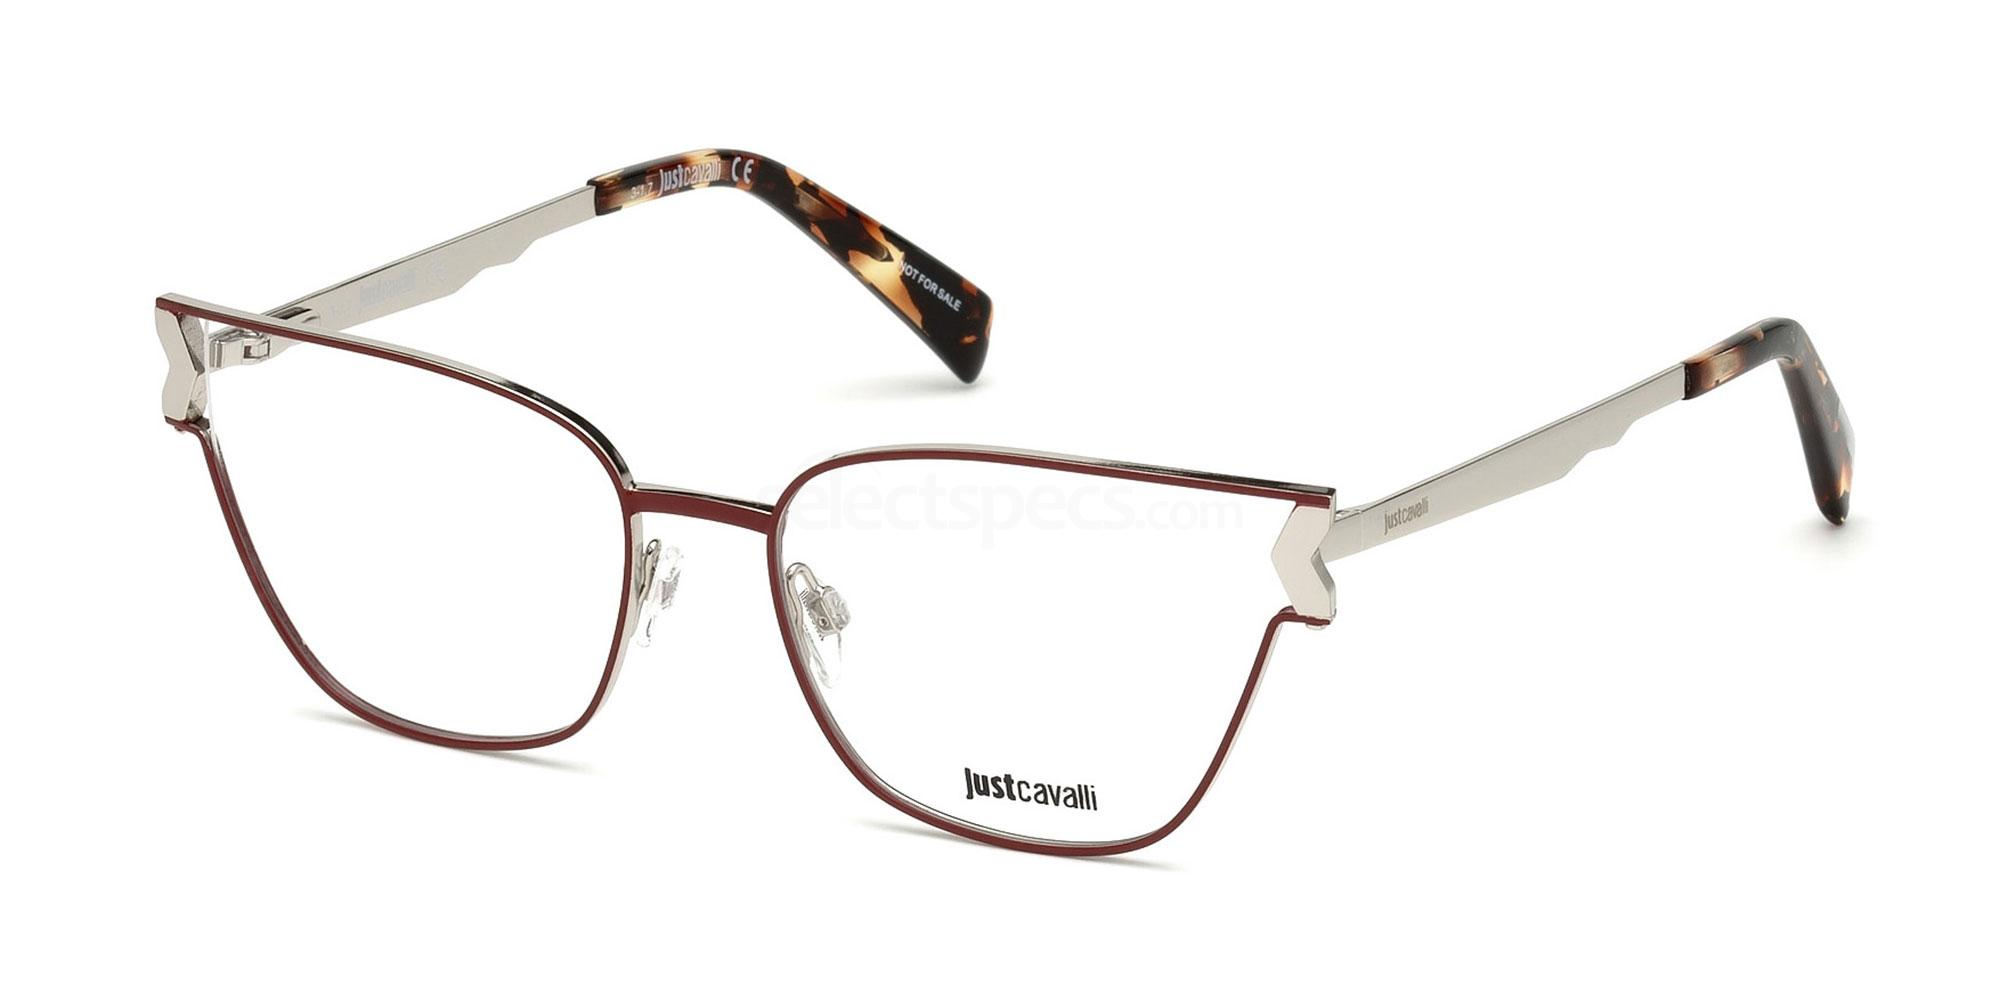 016 JC0815 Glasses, Just Cavalli